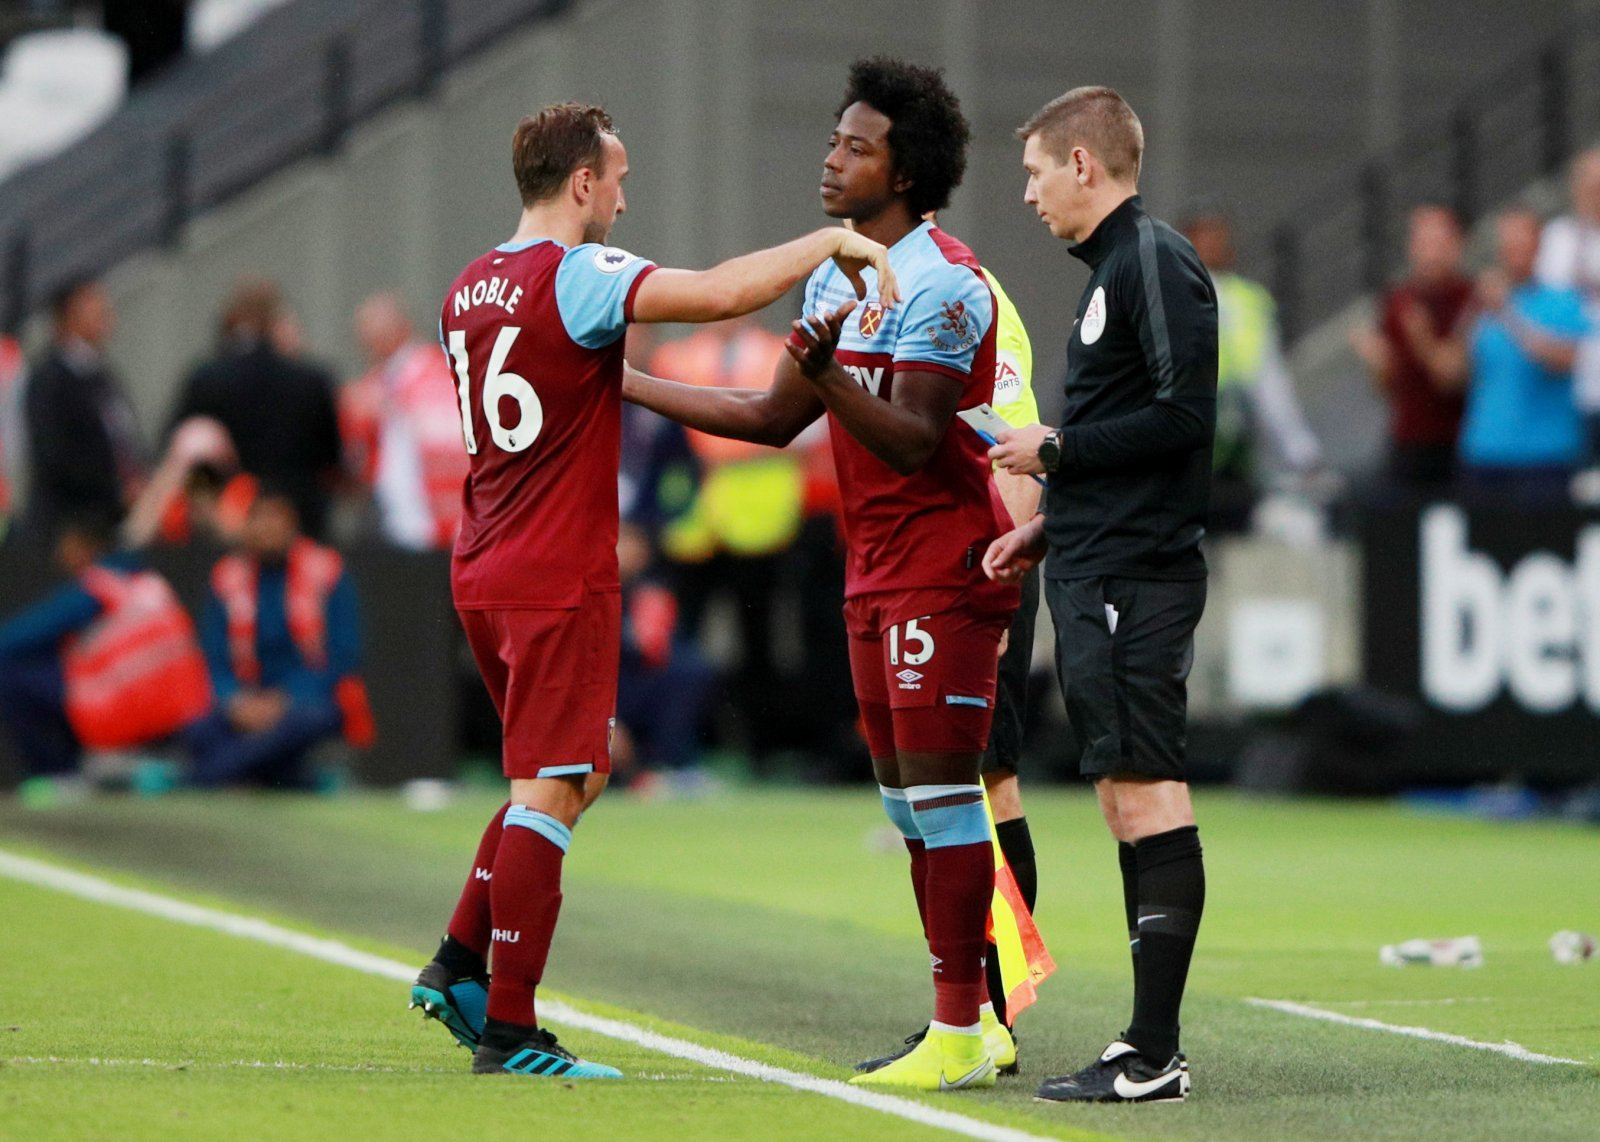 West Ham United: Carlos Sanchez could be allowed to leave in January